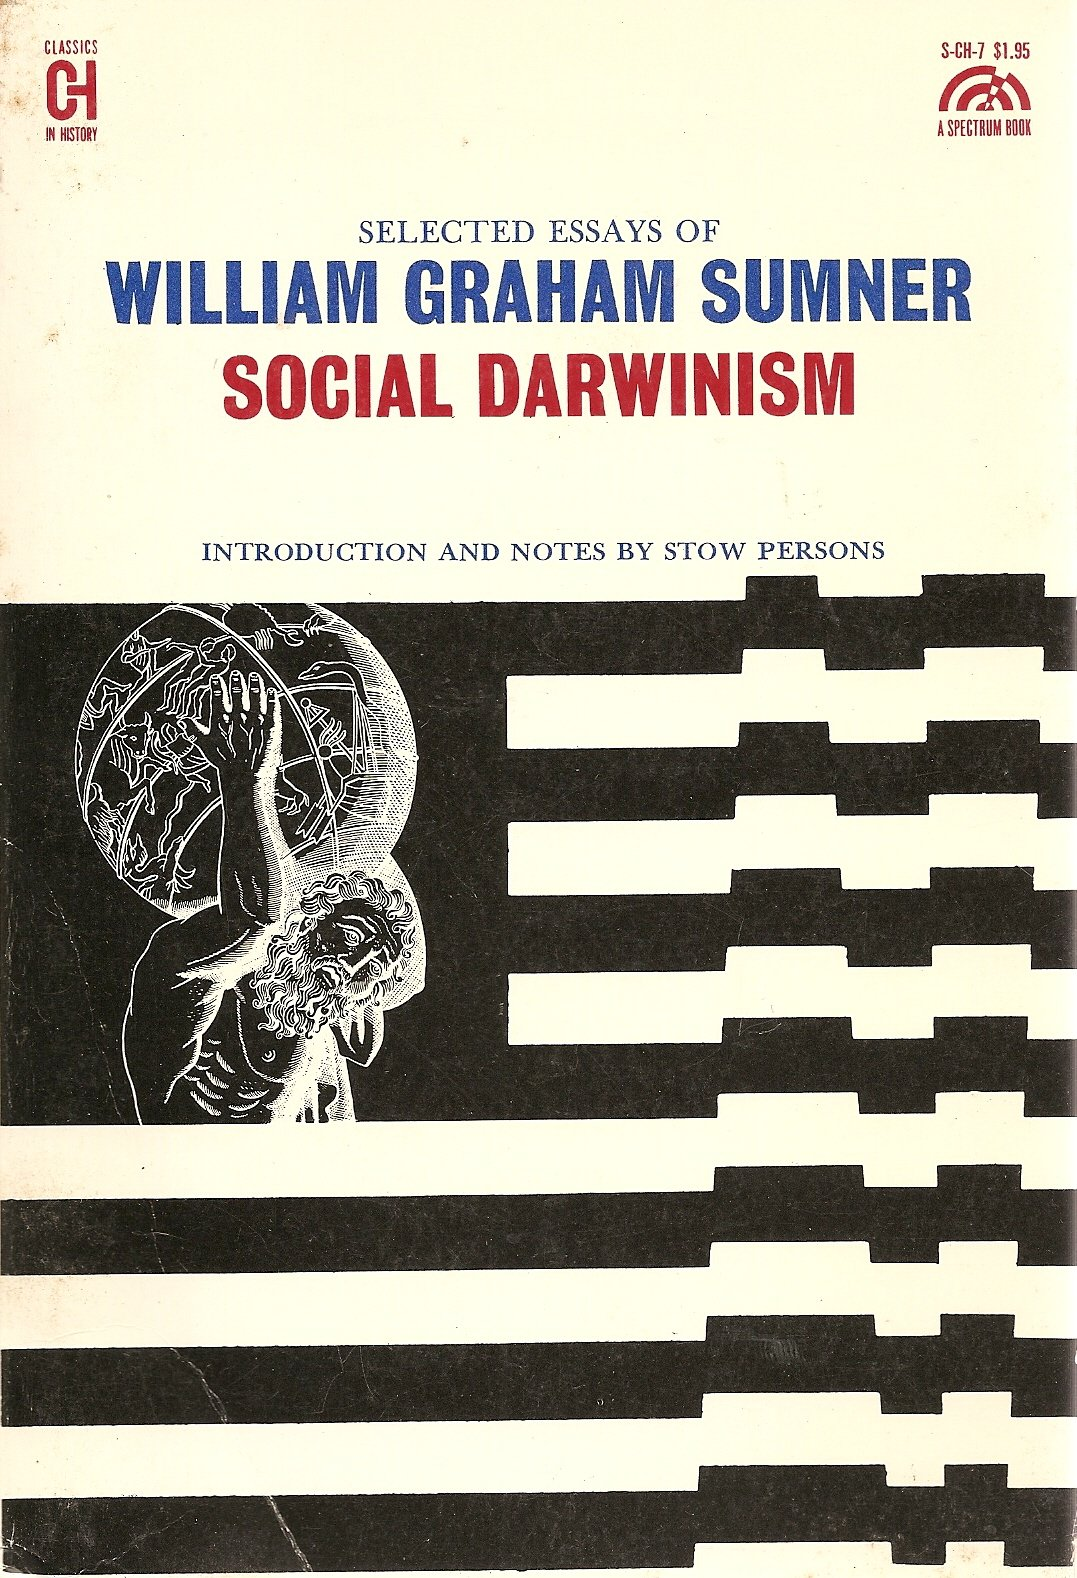 social darwinism selected essays of william graham sumner social darwinism selected essays of william graham sumner classics in history william graham sumner stow persons com books